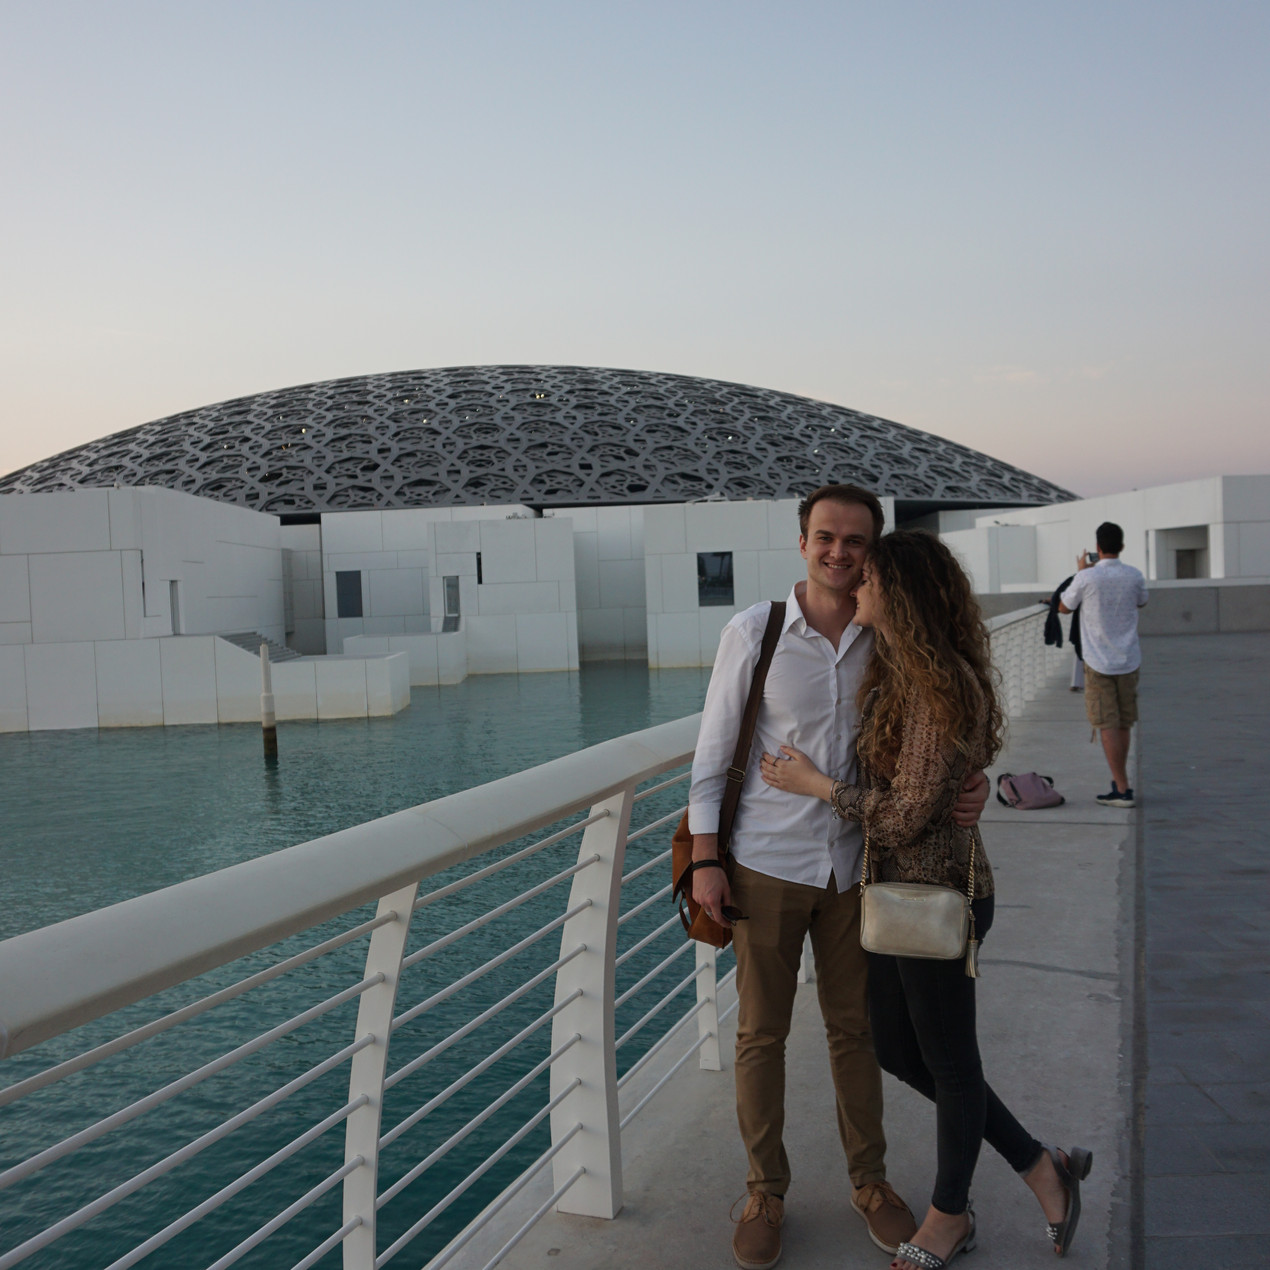 Visiting the Louvre Abu Dhabi